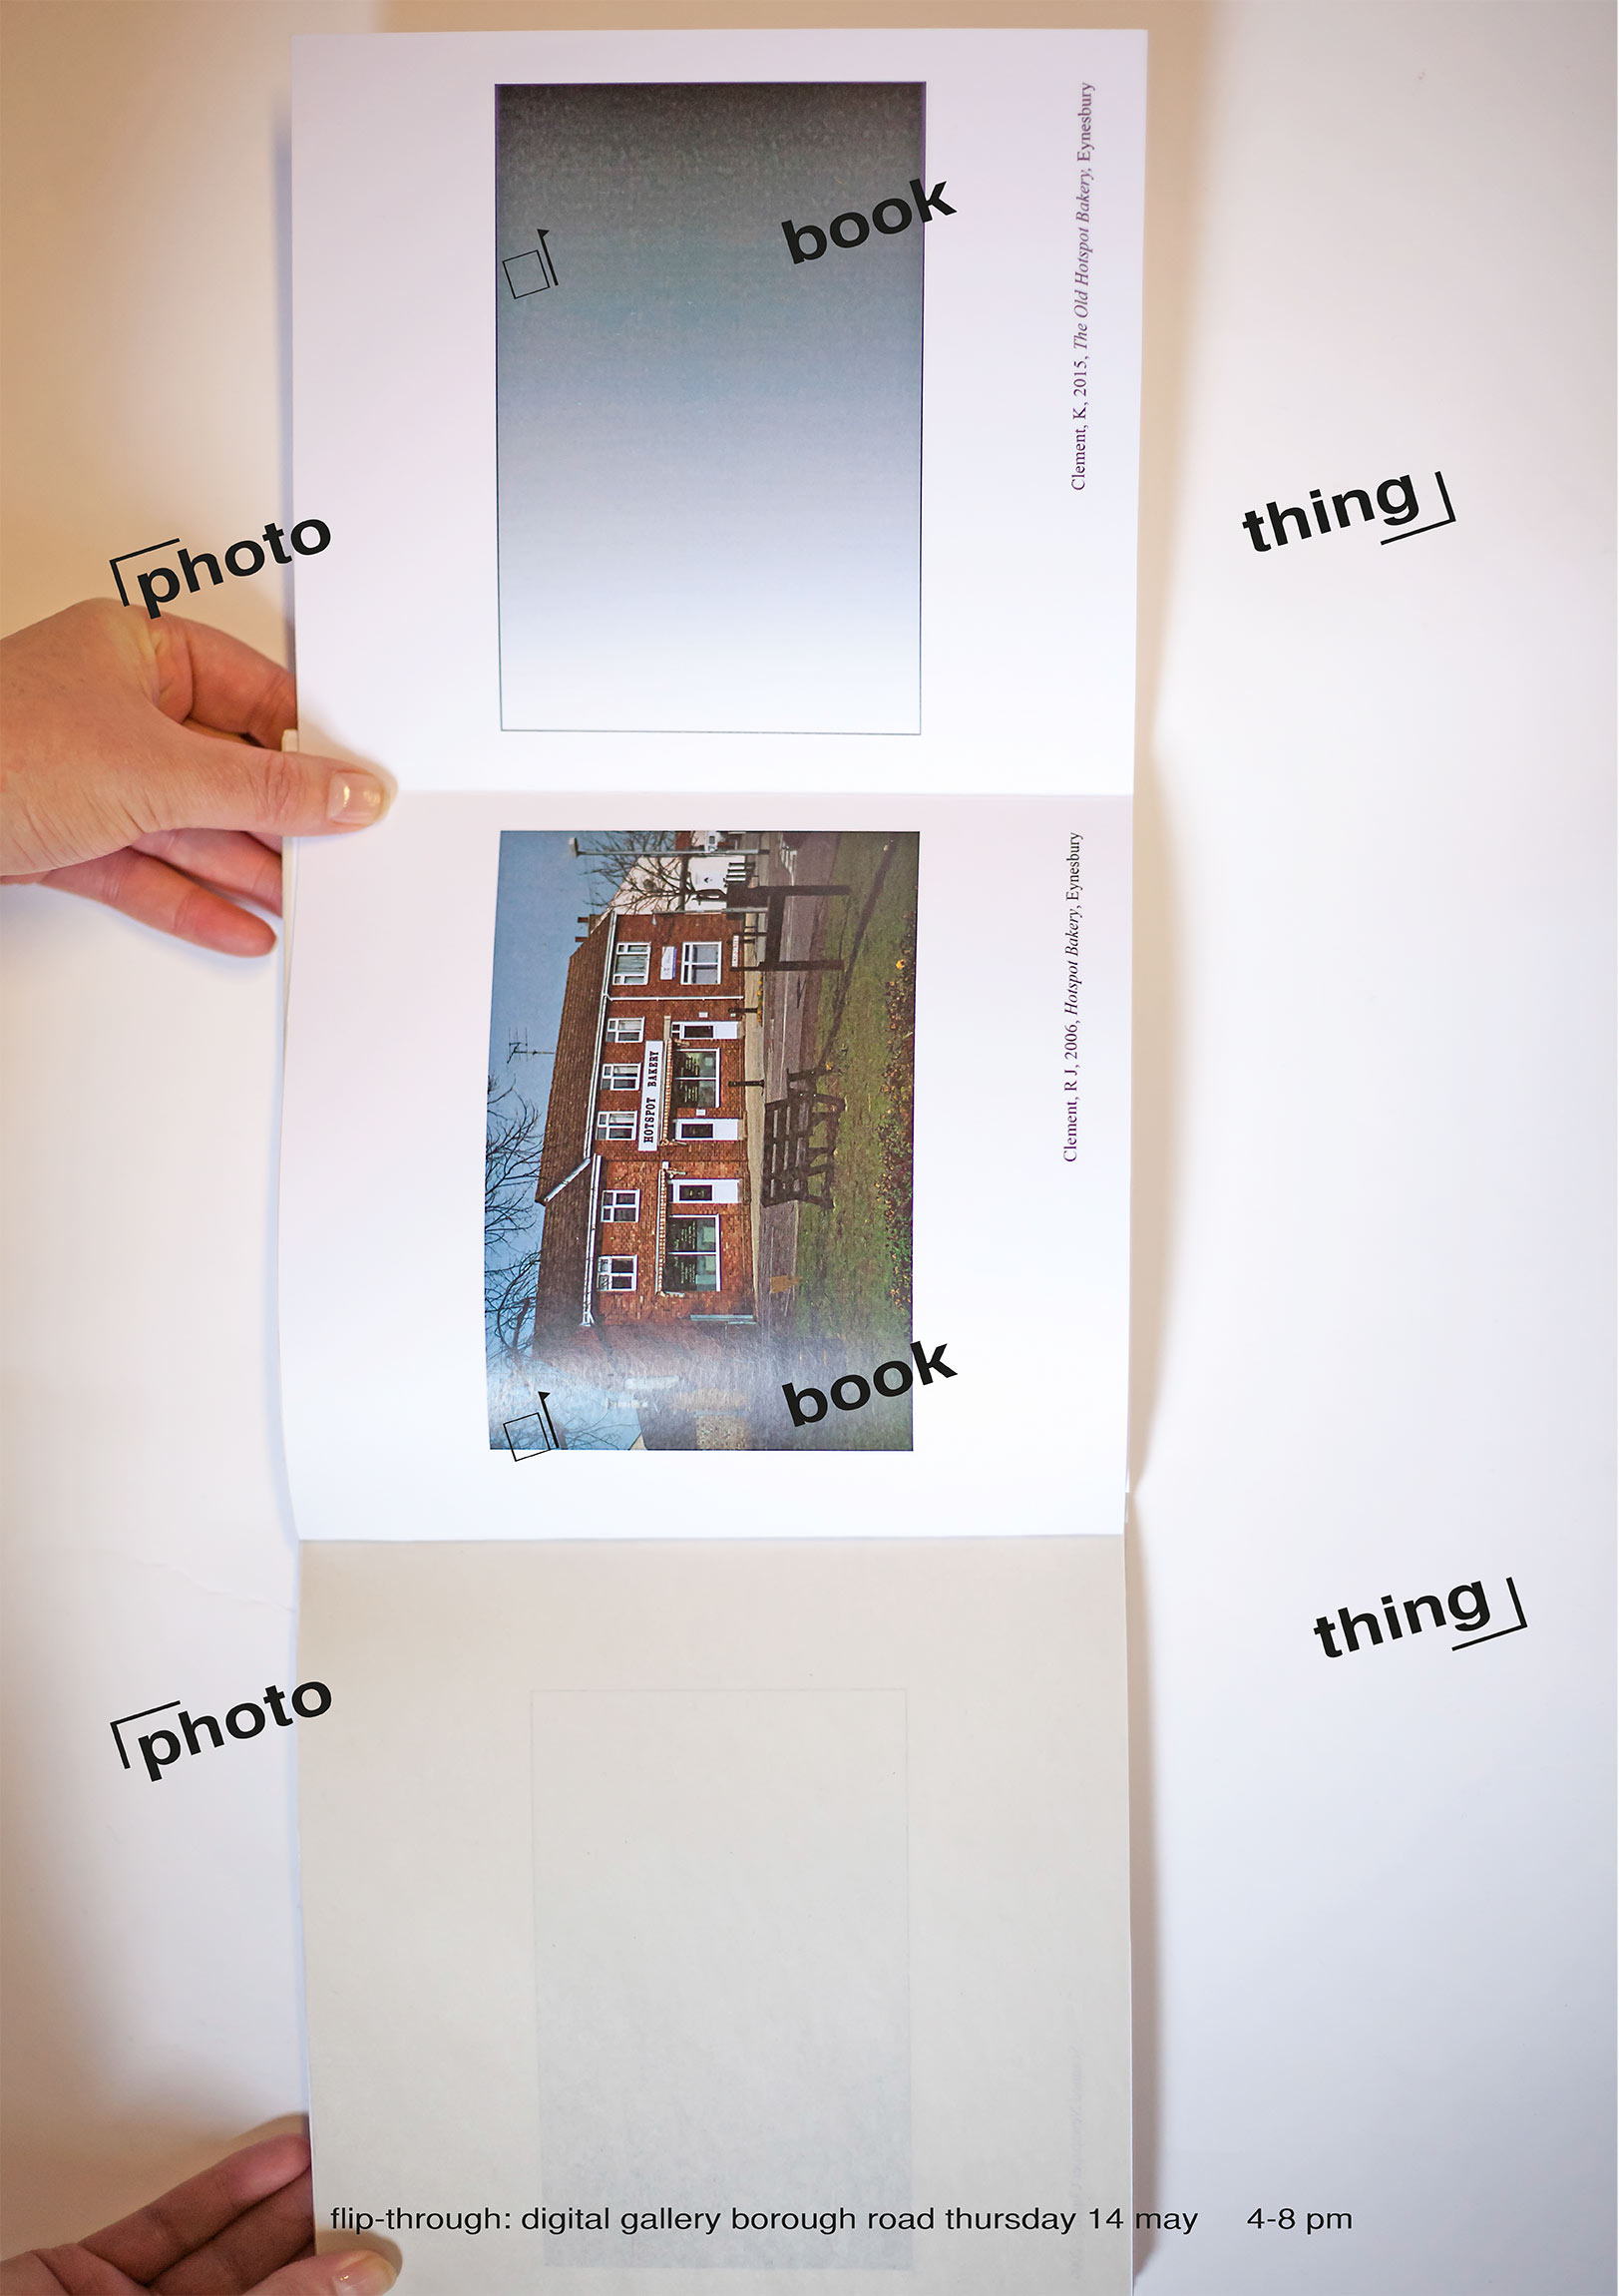 PHOTO-BOOK-THING-4